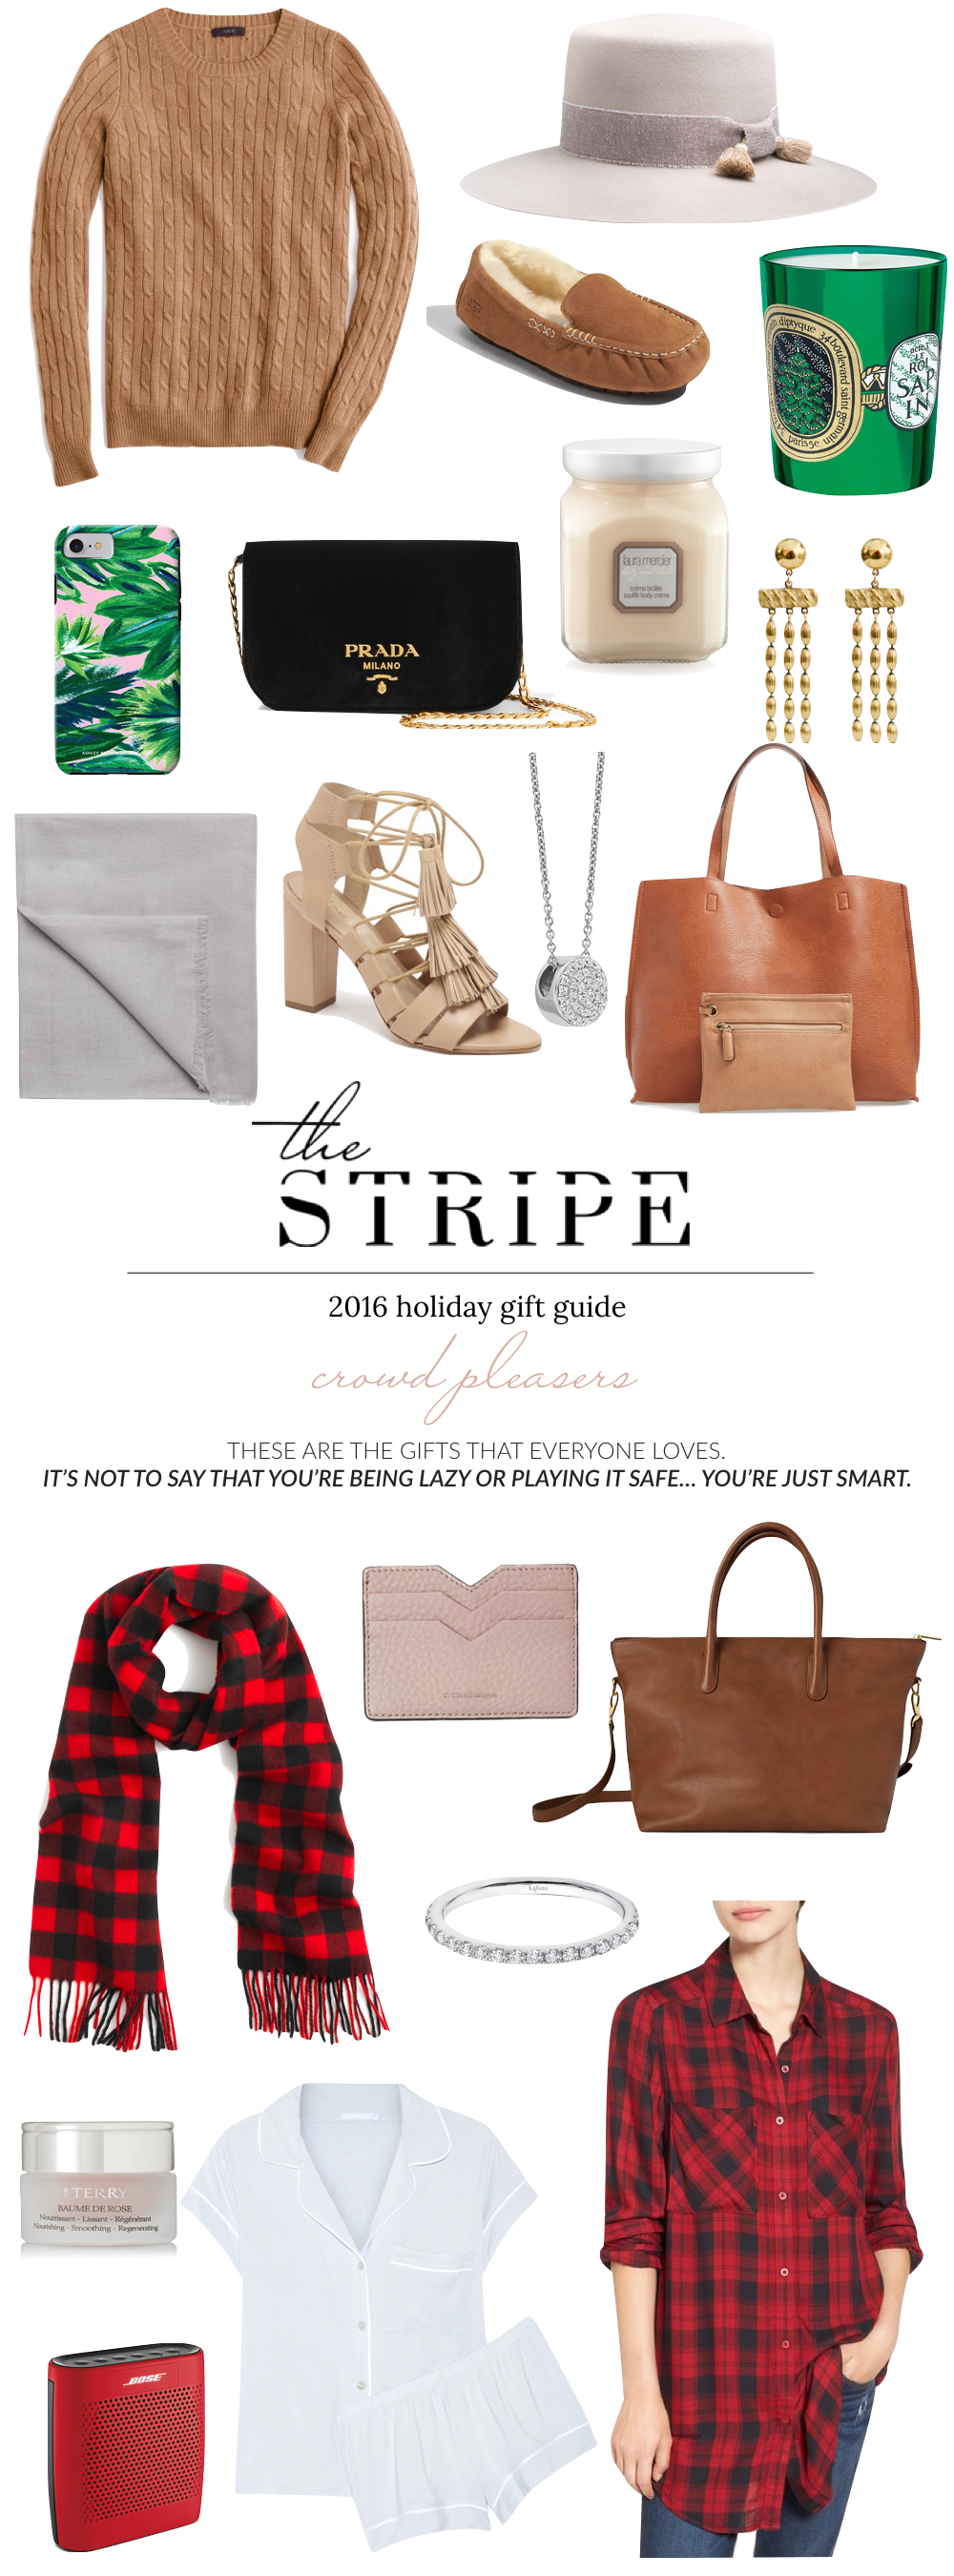 Crowd-pleaser gifts: Gifts that everyone will love! The Stripe | 2016 Holiday Gift Guide.